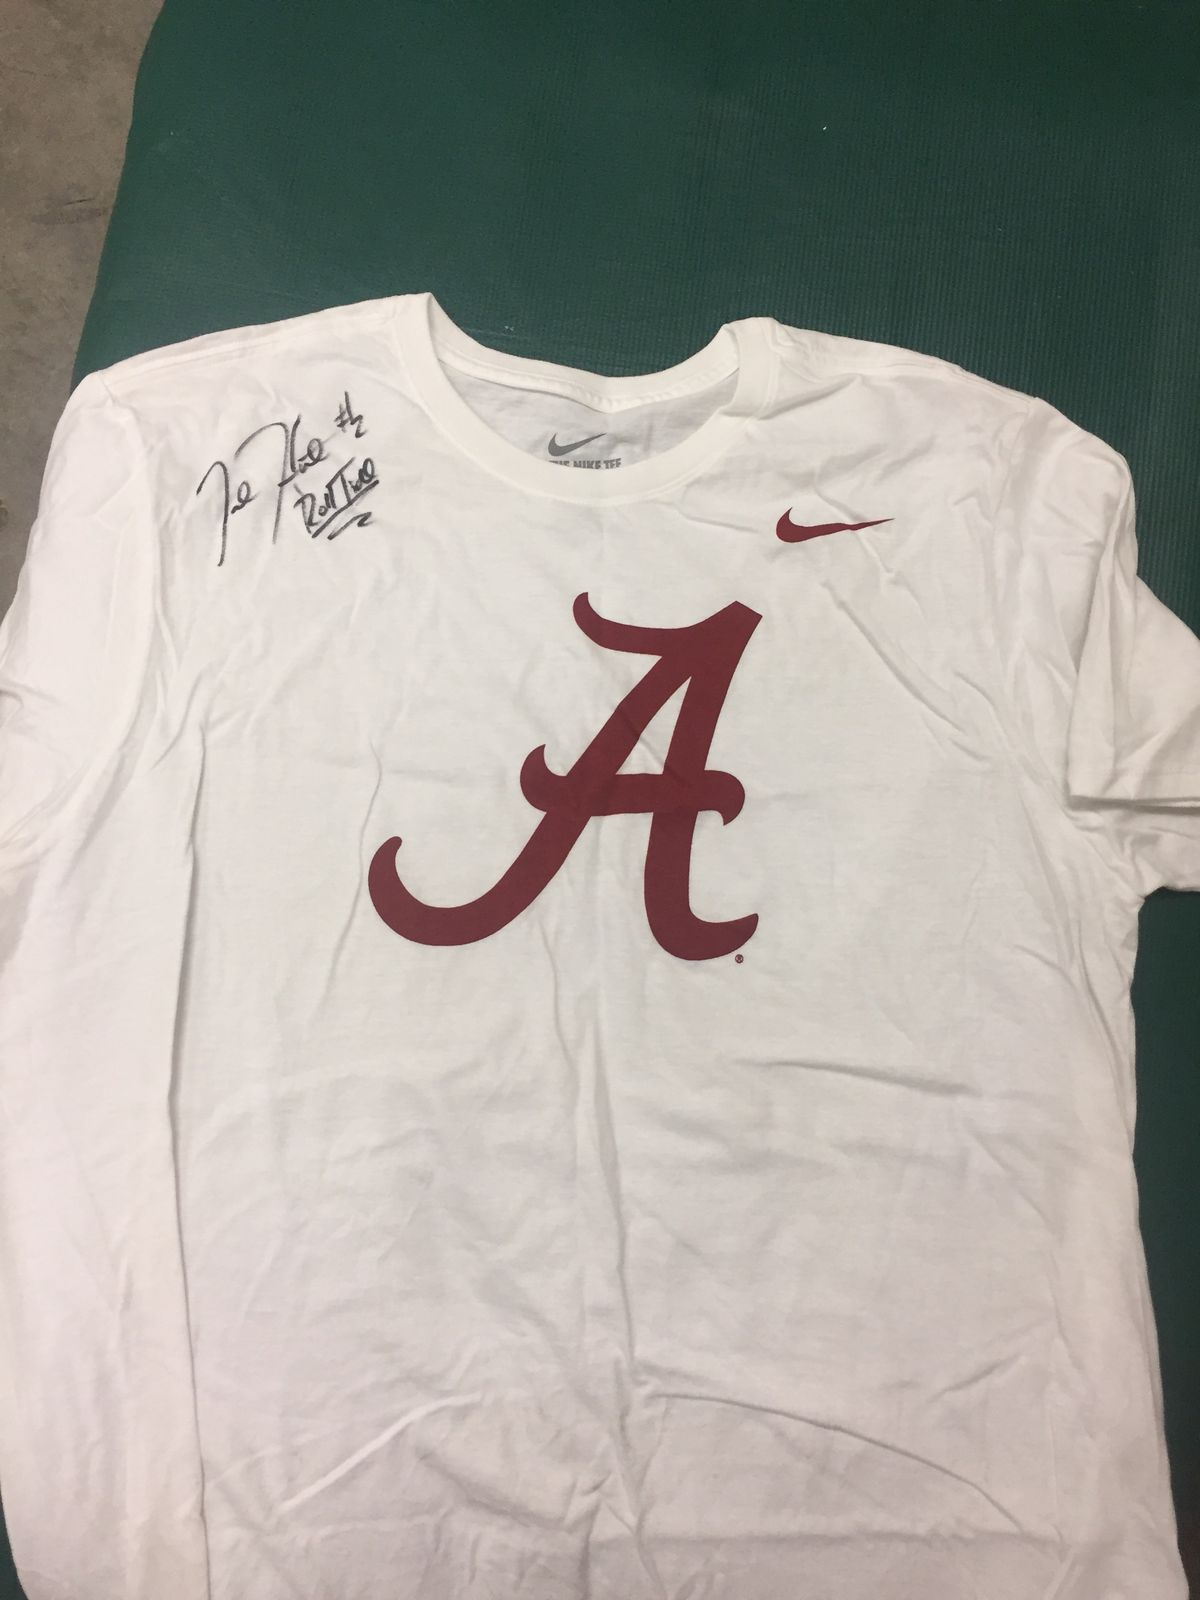 44da2e977 A white Alabama shirt autographed by Jalen Hurts on the right shoulder